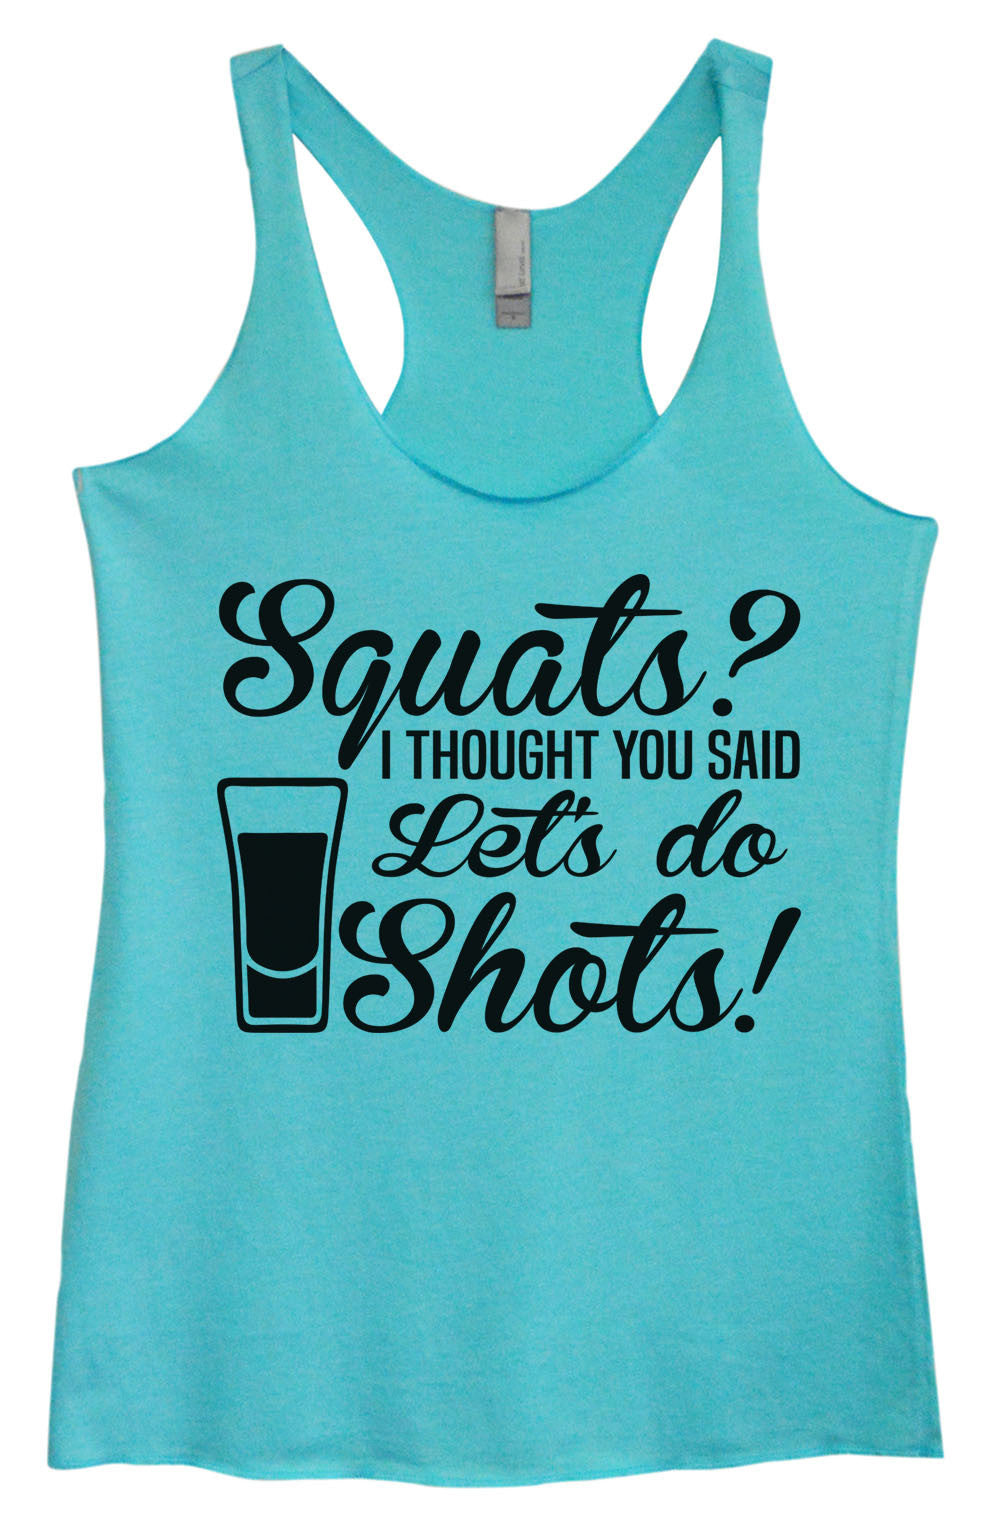 Womens Fashion Triblend Tank Top - Squats? I Thought You Said Let's Do Shots! - Tri-949 - Funny Shirts Tank Tops Burnouts and Triblends  - 3